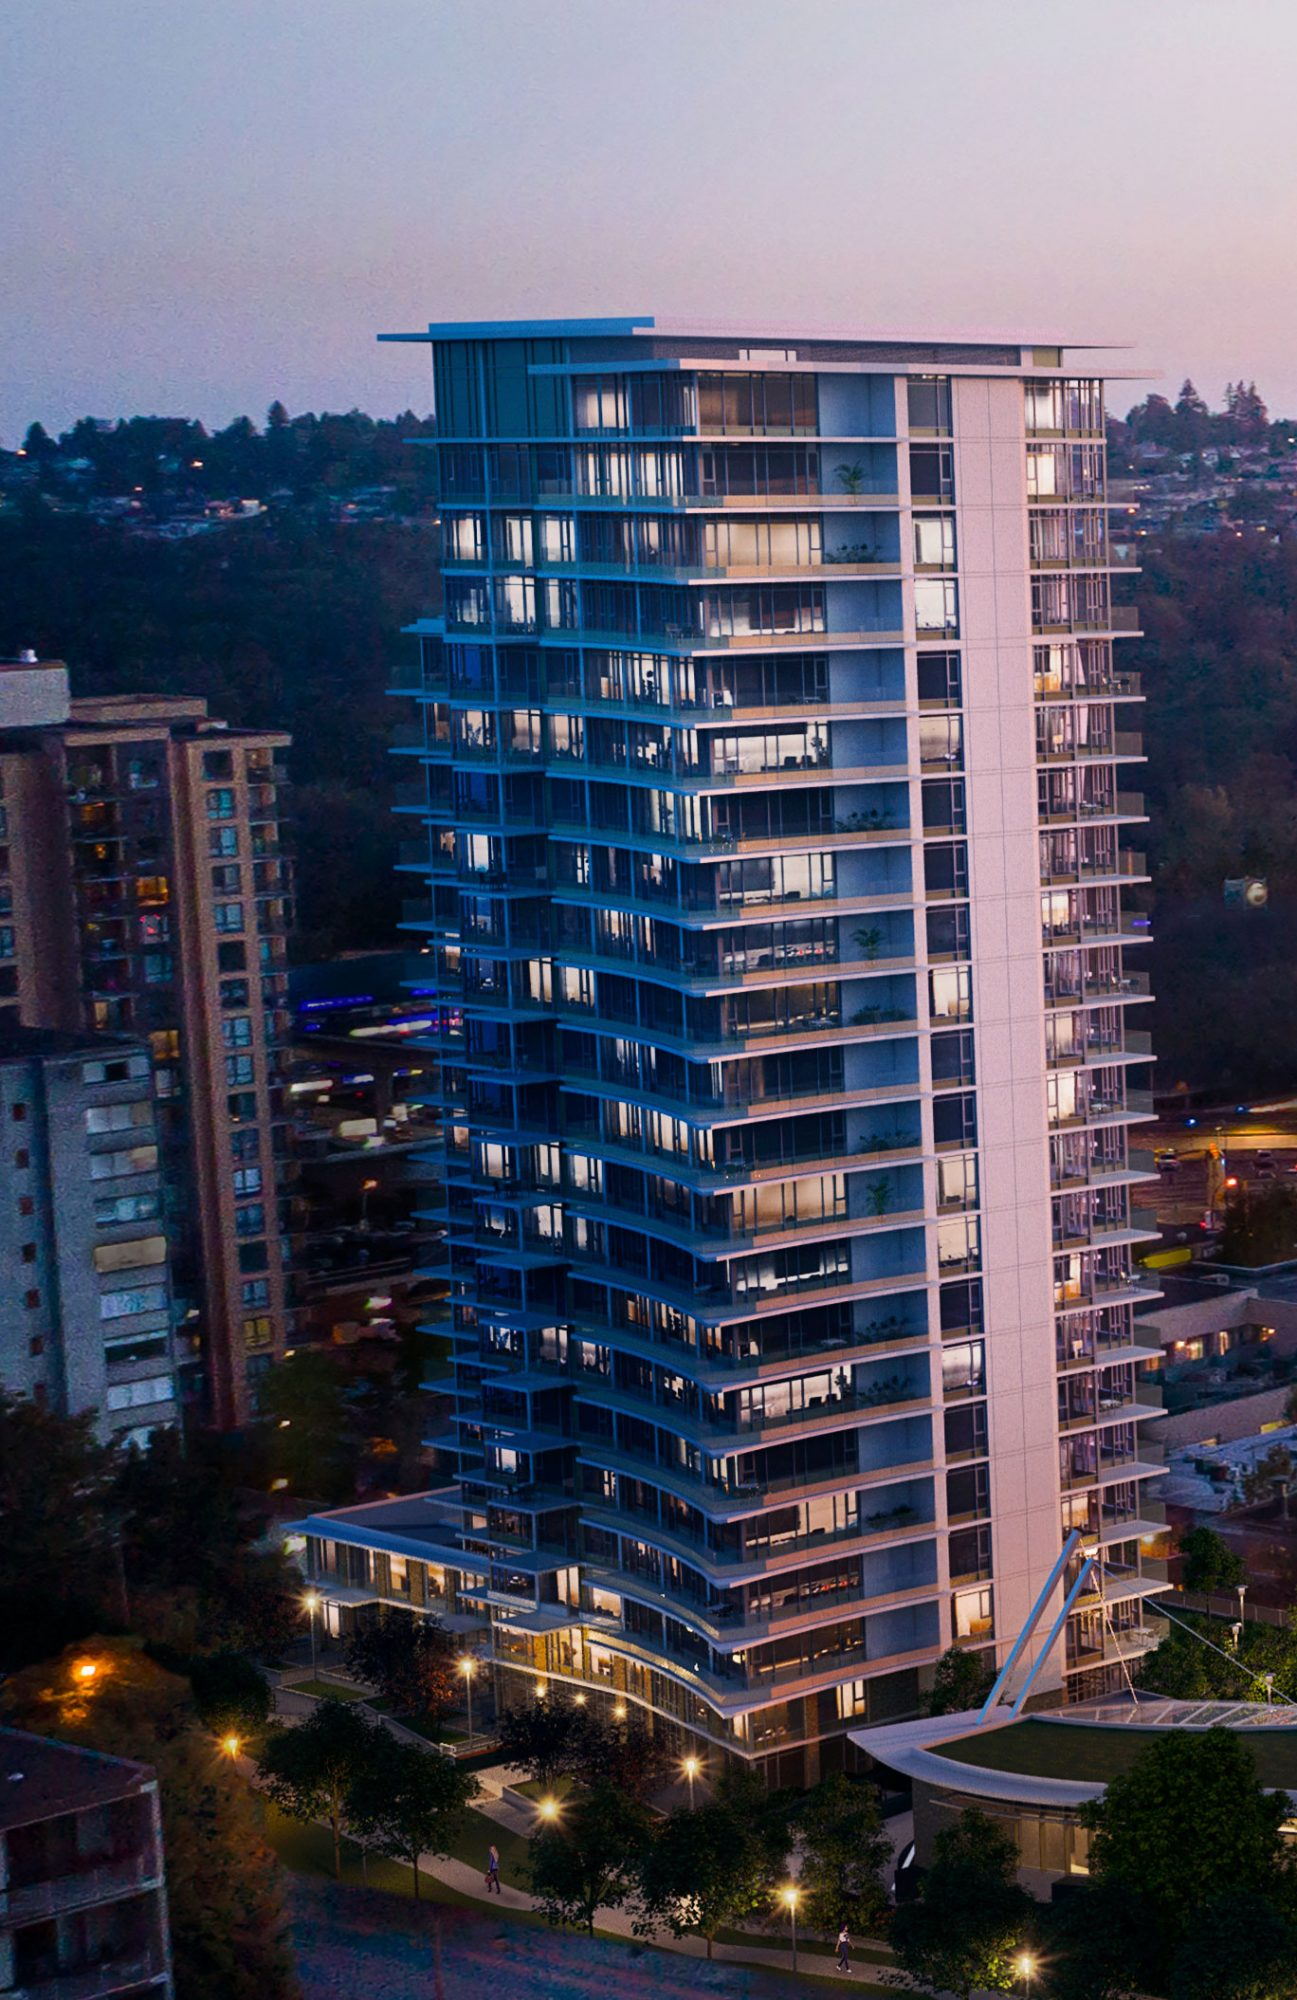 Hensley in Coquitlam includes new purpose-built rental tower